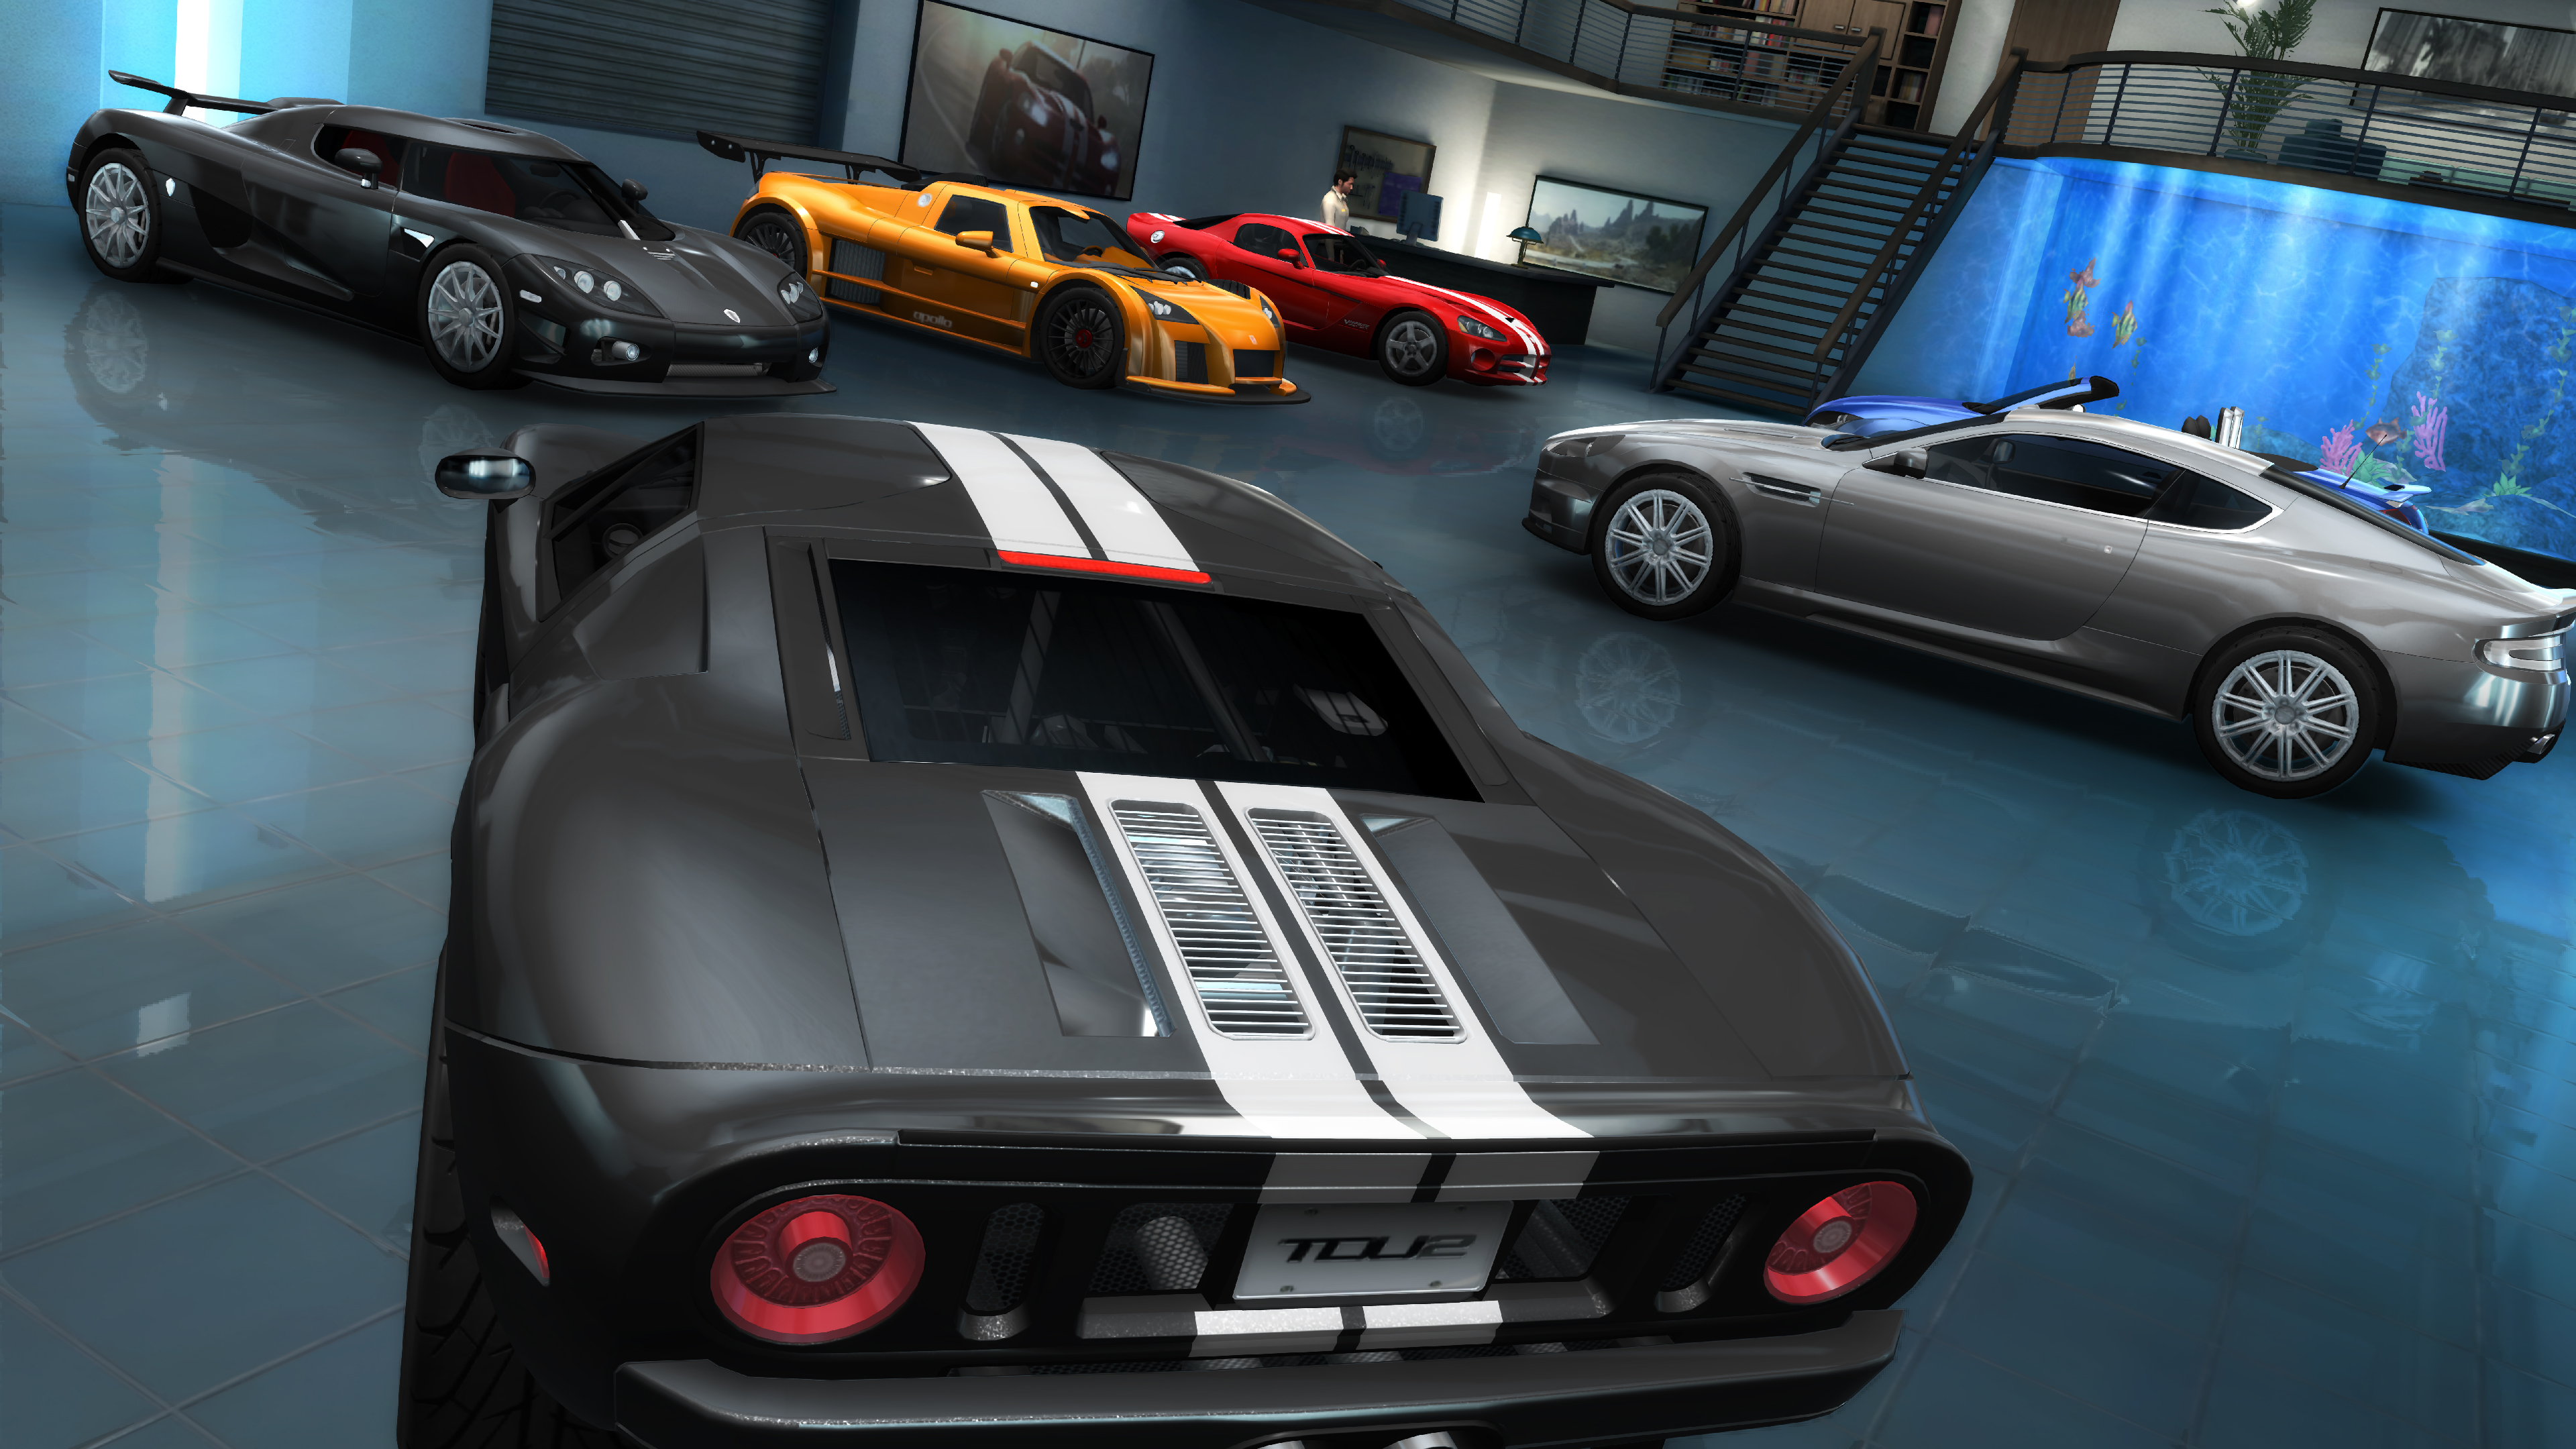 Test Drive Unlimited 2 Garage Pic